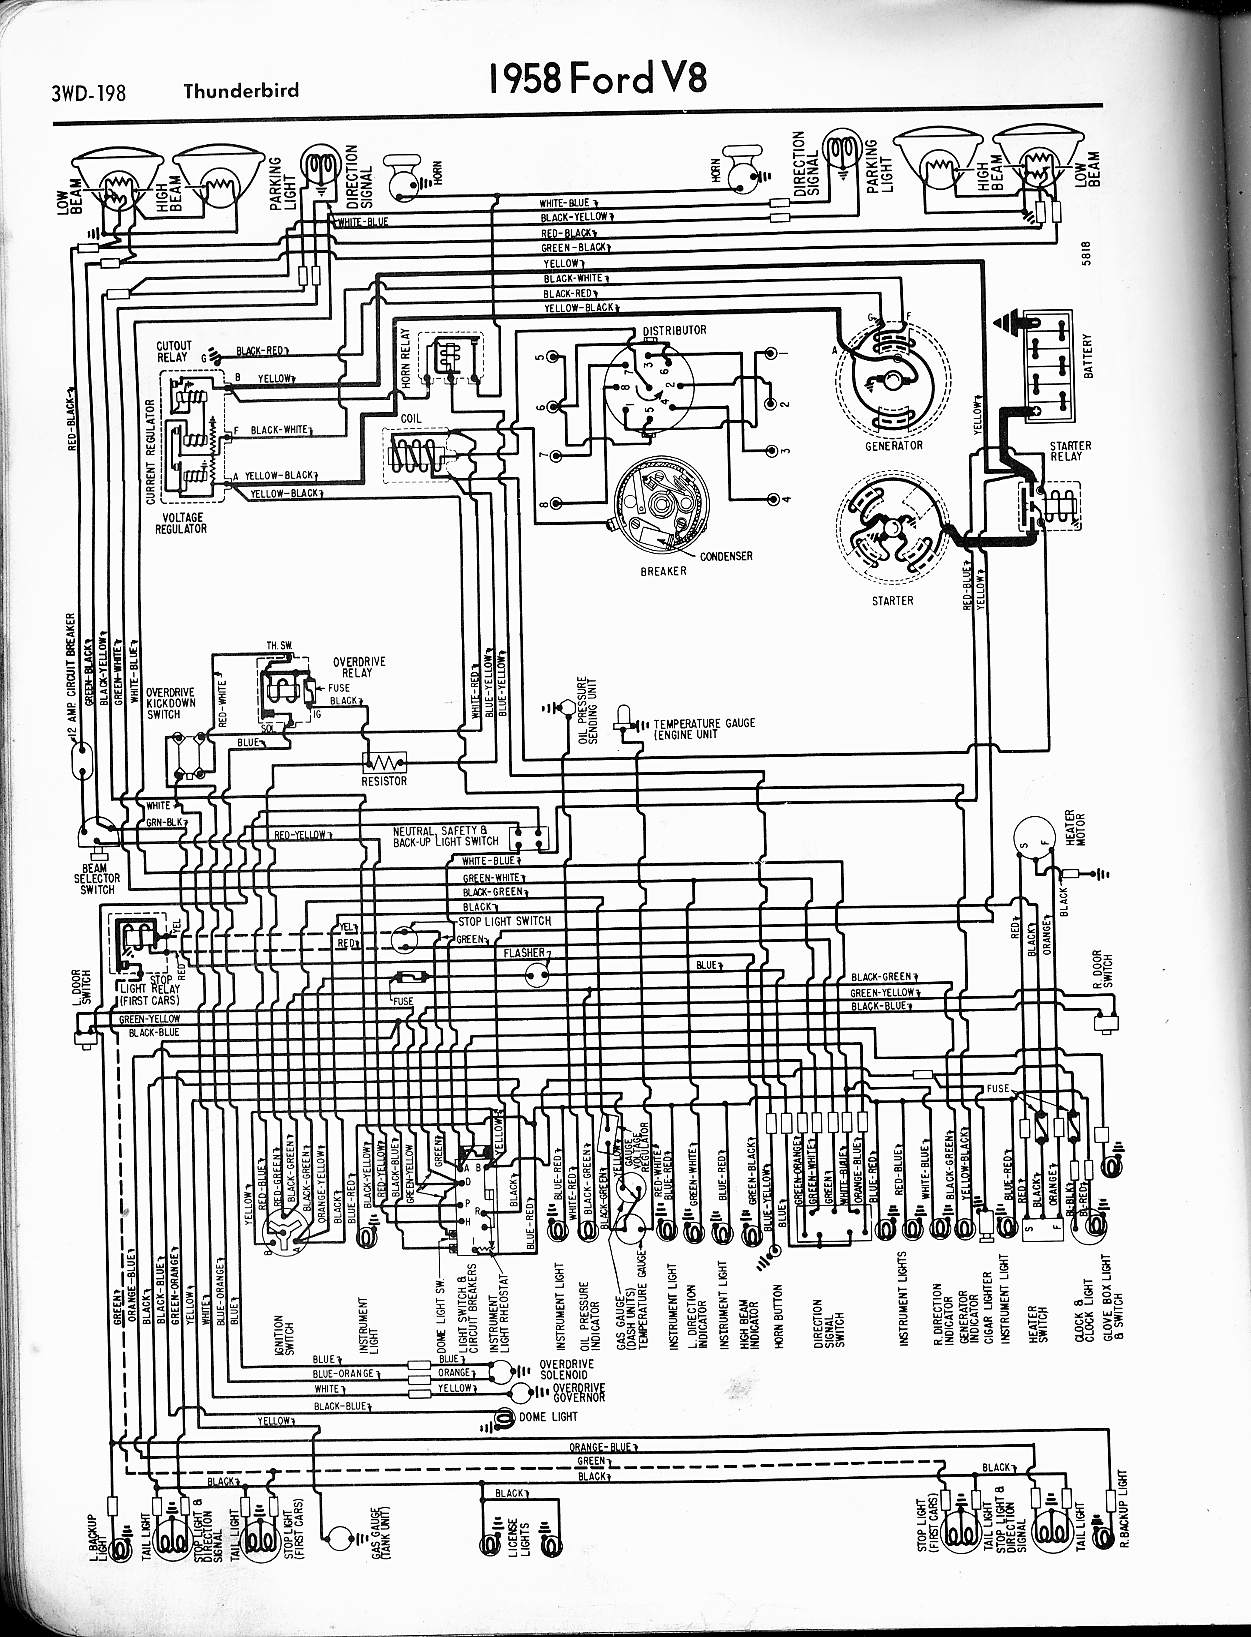 MWire5765 198 57 65 ford wiring diagrams 1959 ford wiring diagram at gsmx.co